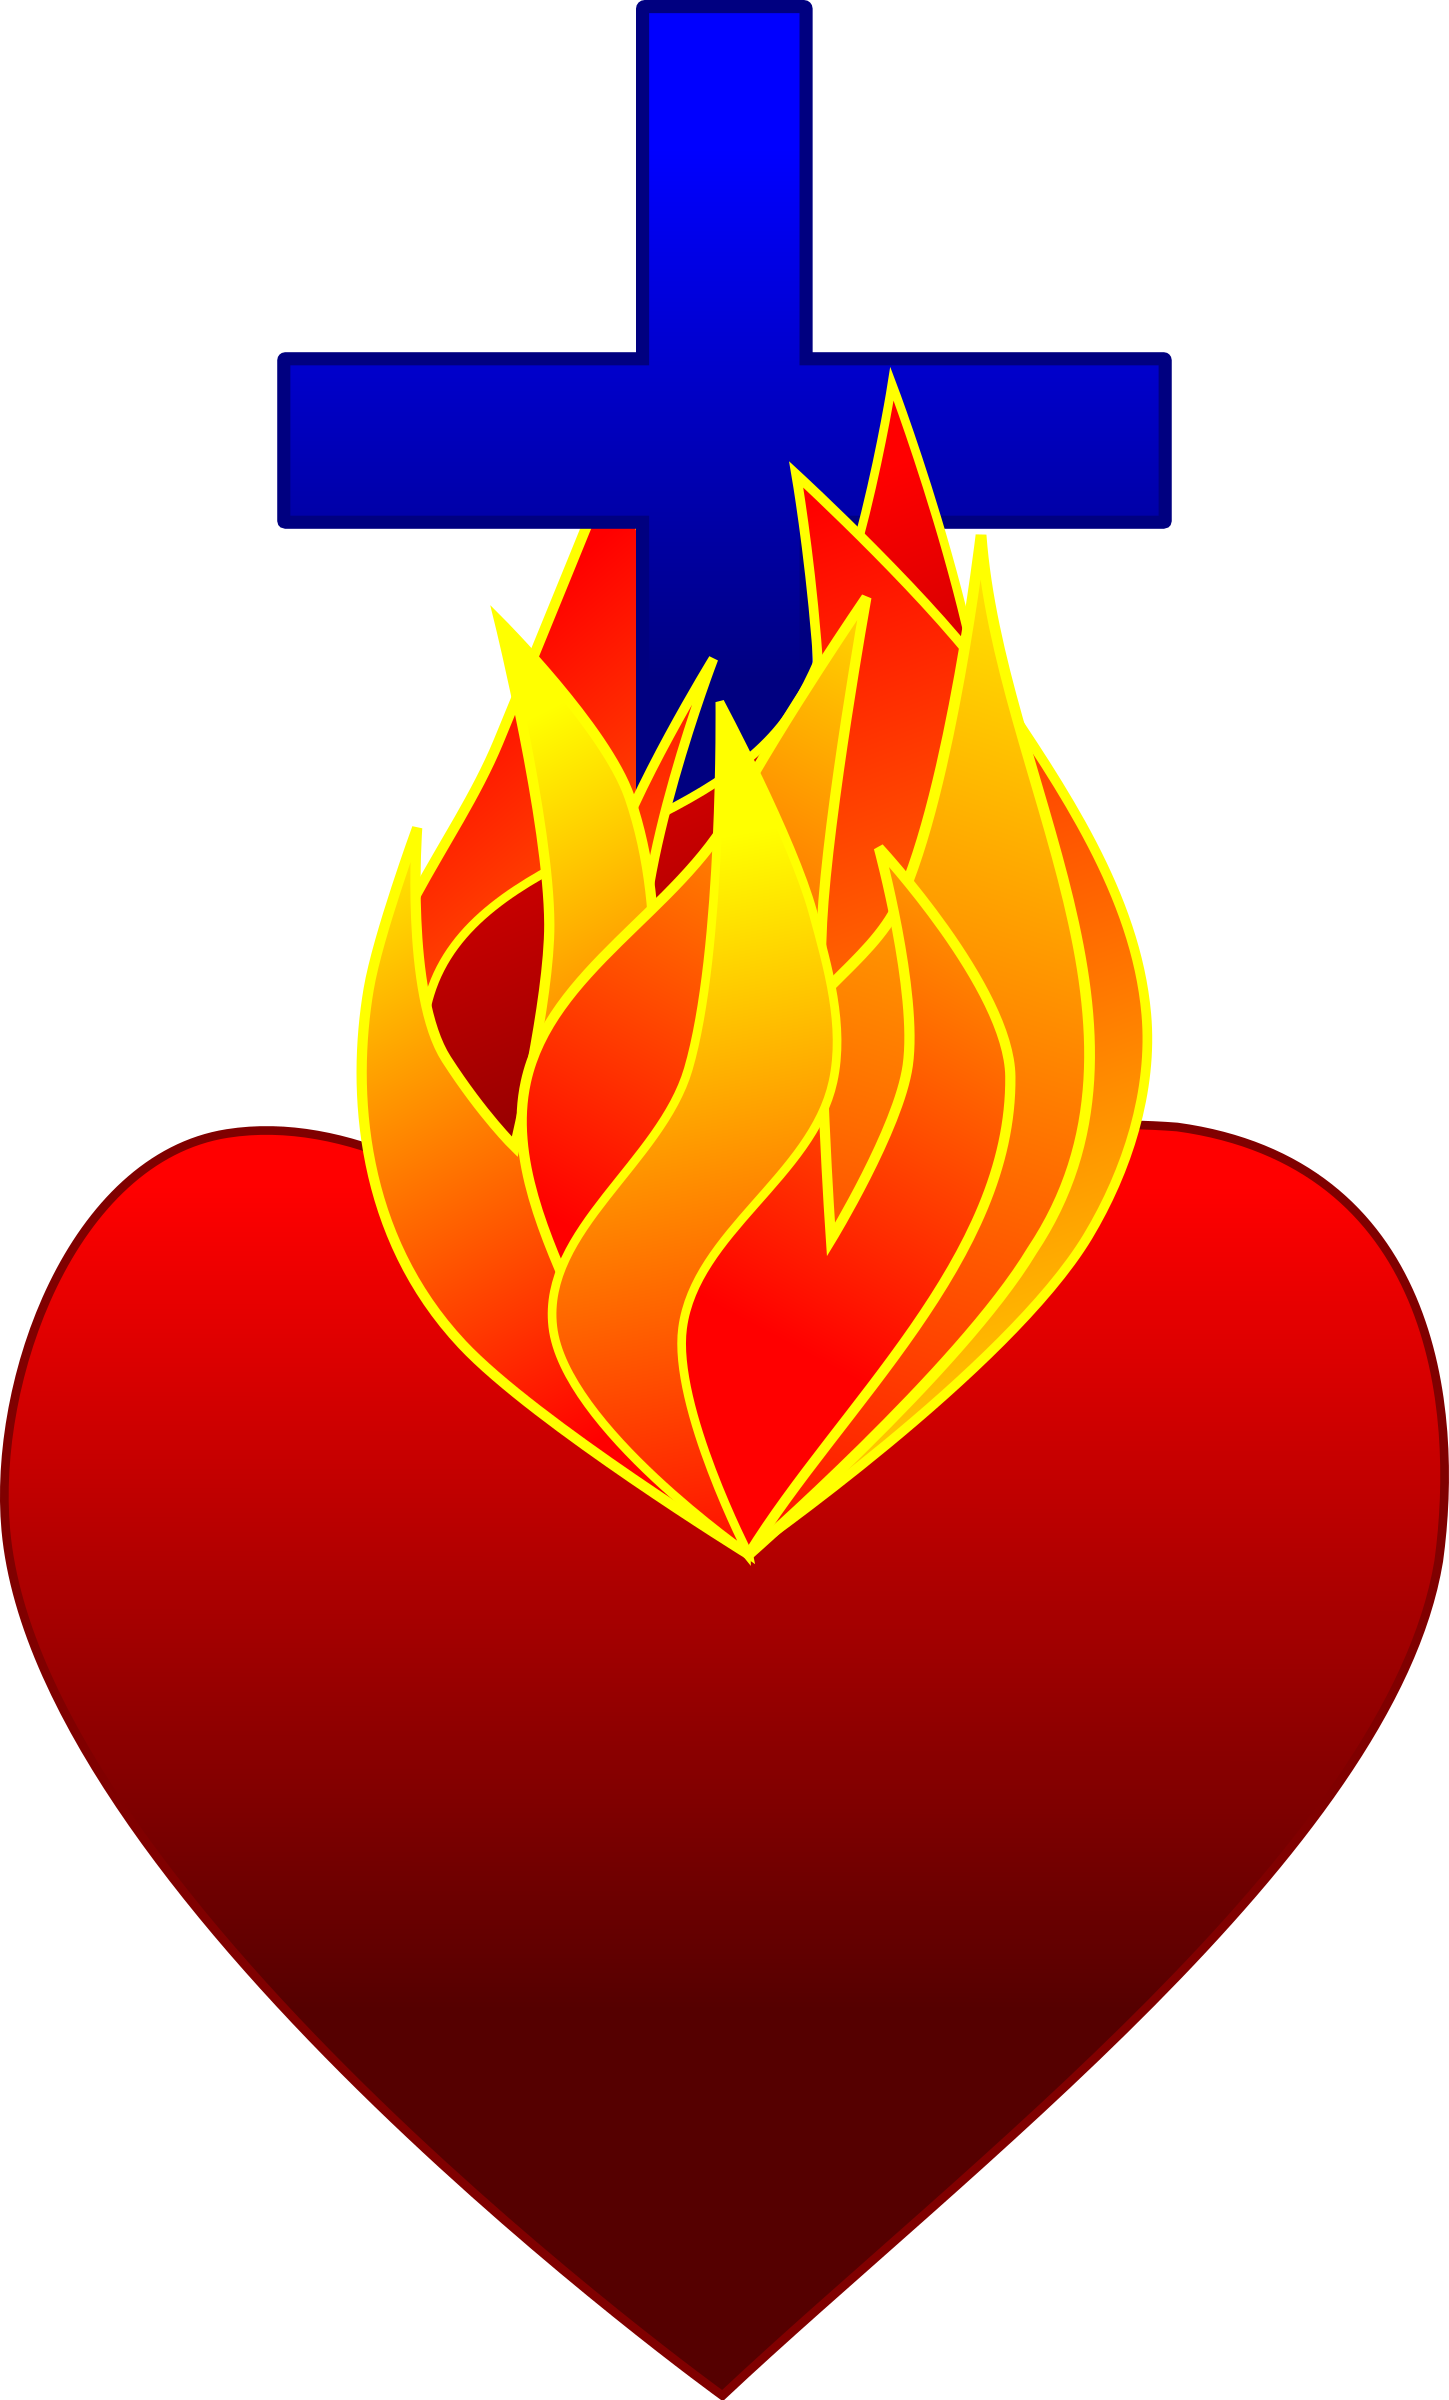 Flaming heart png. Free flame cliparts download